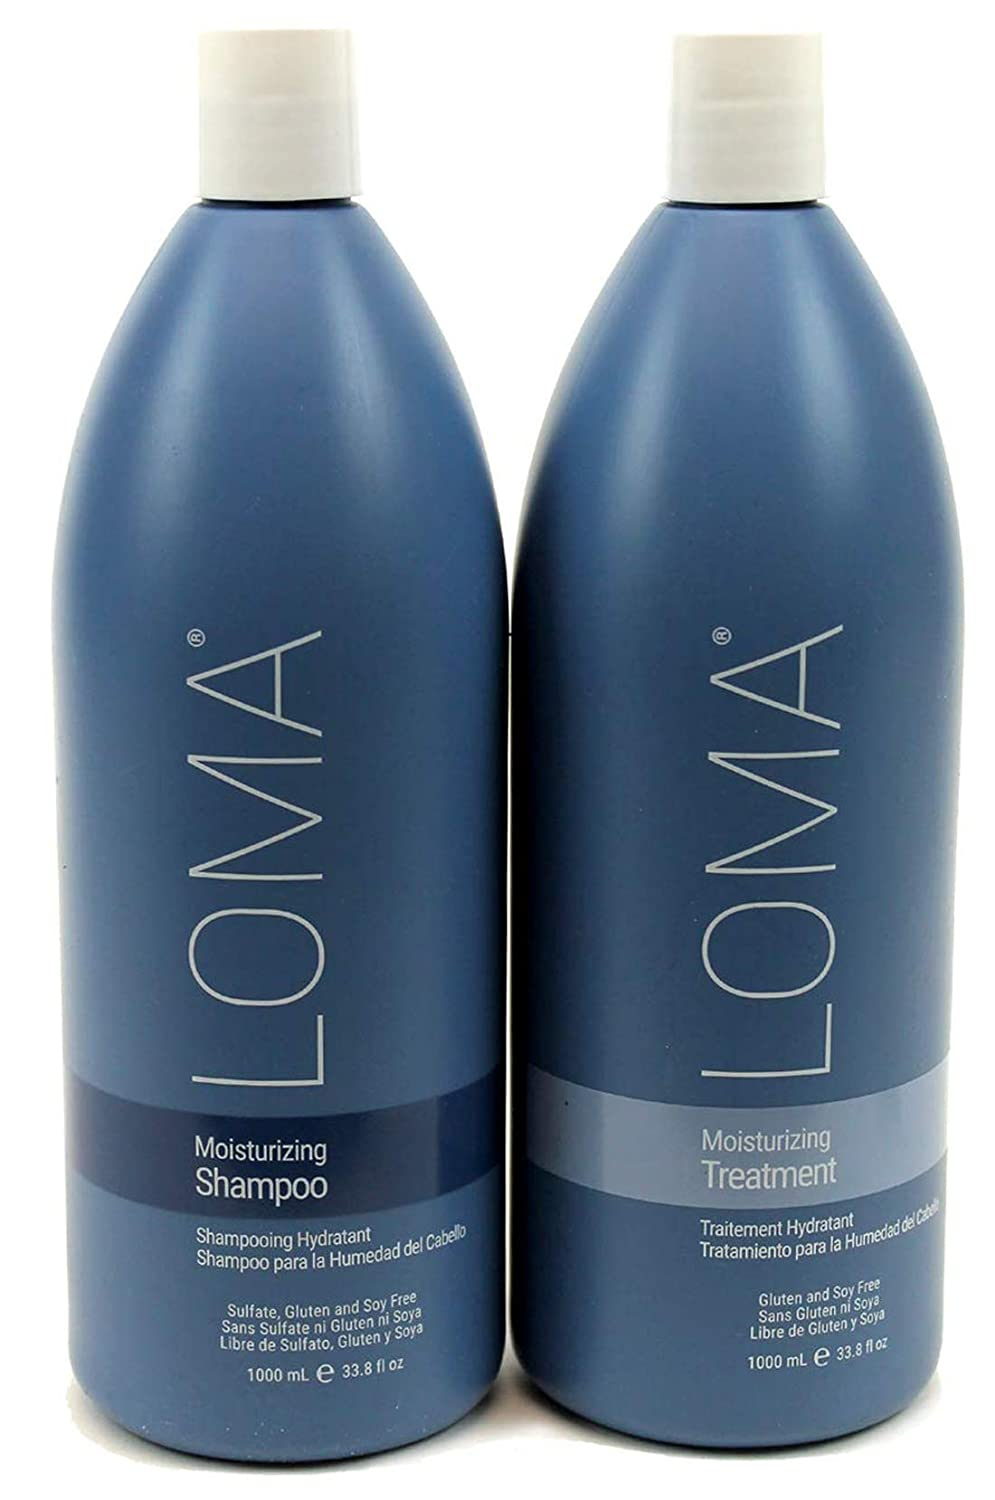 LOMA Moisturizing Shampoo Dealing full price reduction and Treatment DUO Animer and price revision PACK